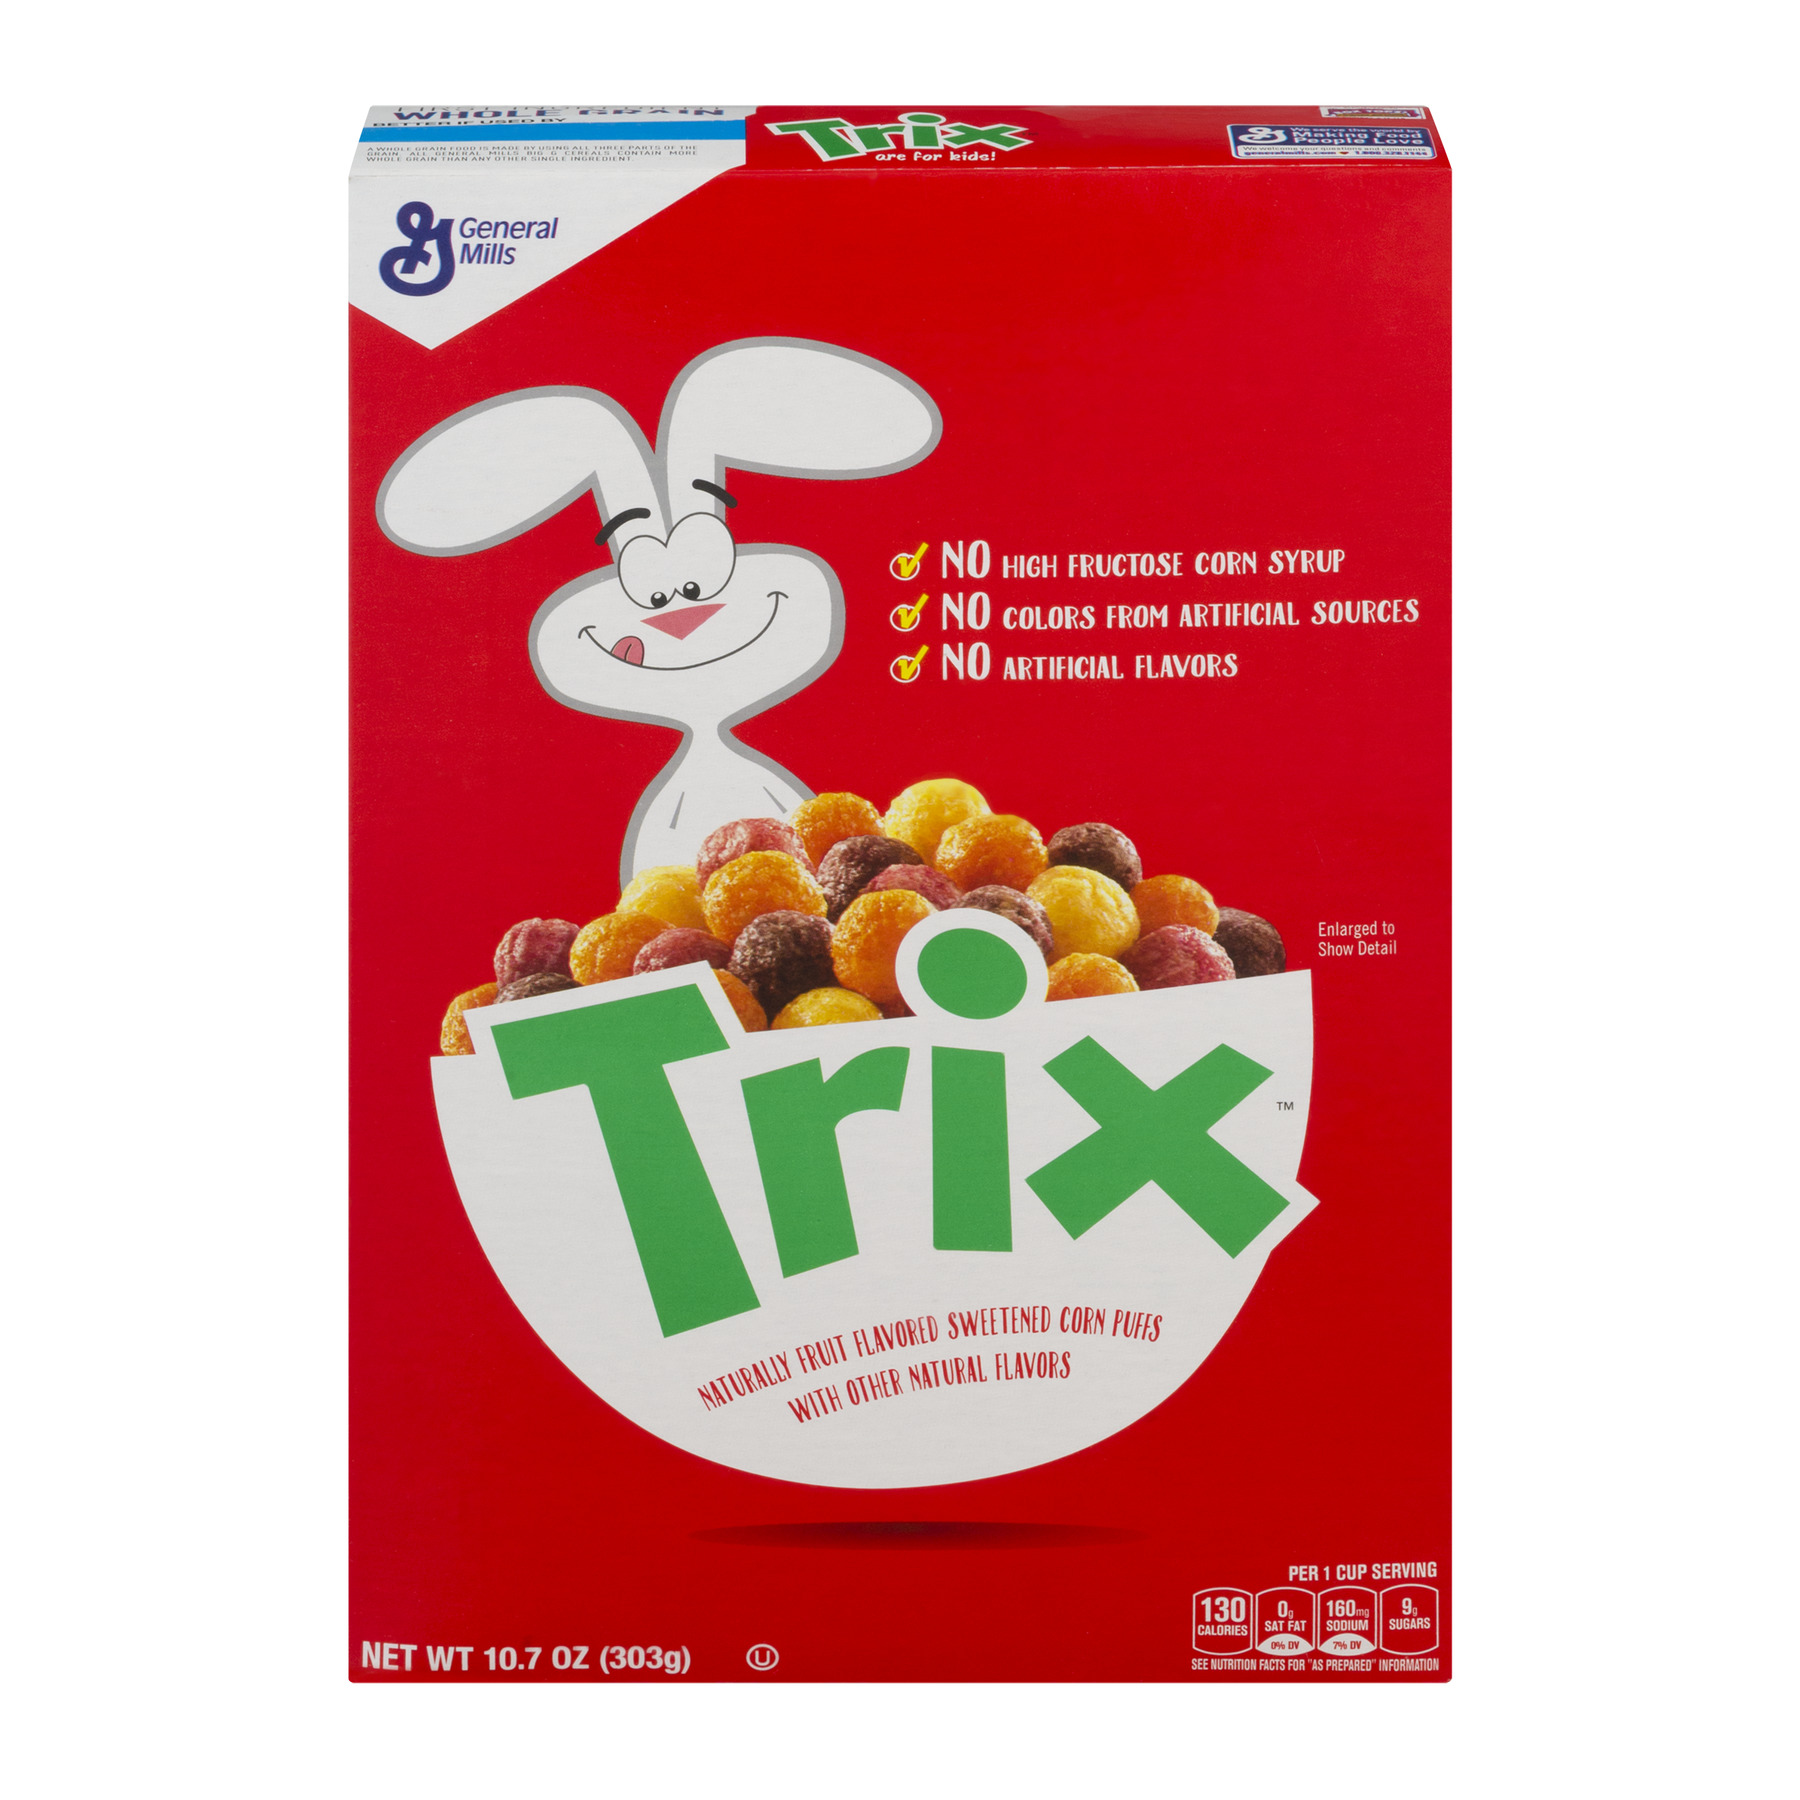 Trix Cereal Swirls 10.7 oz Box